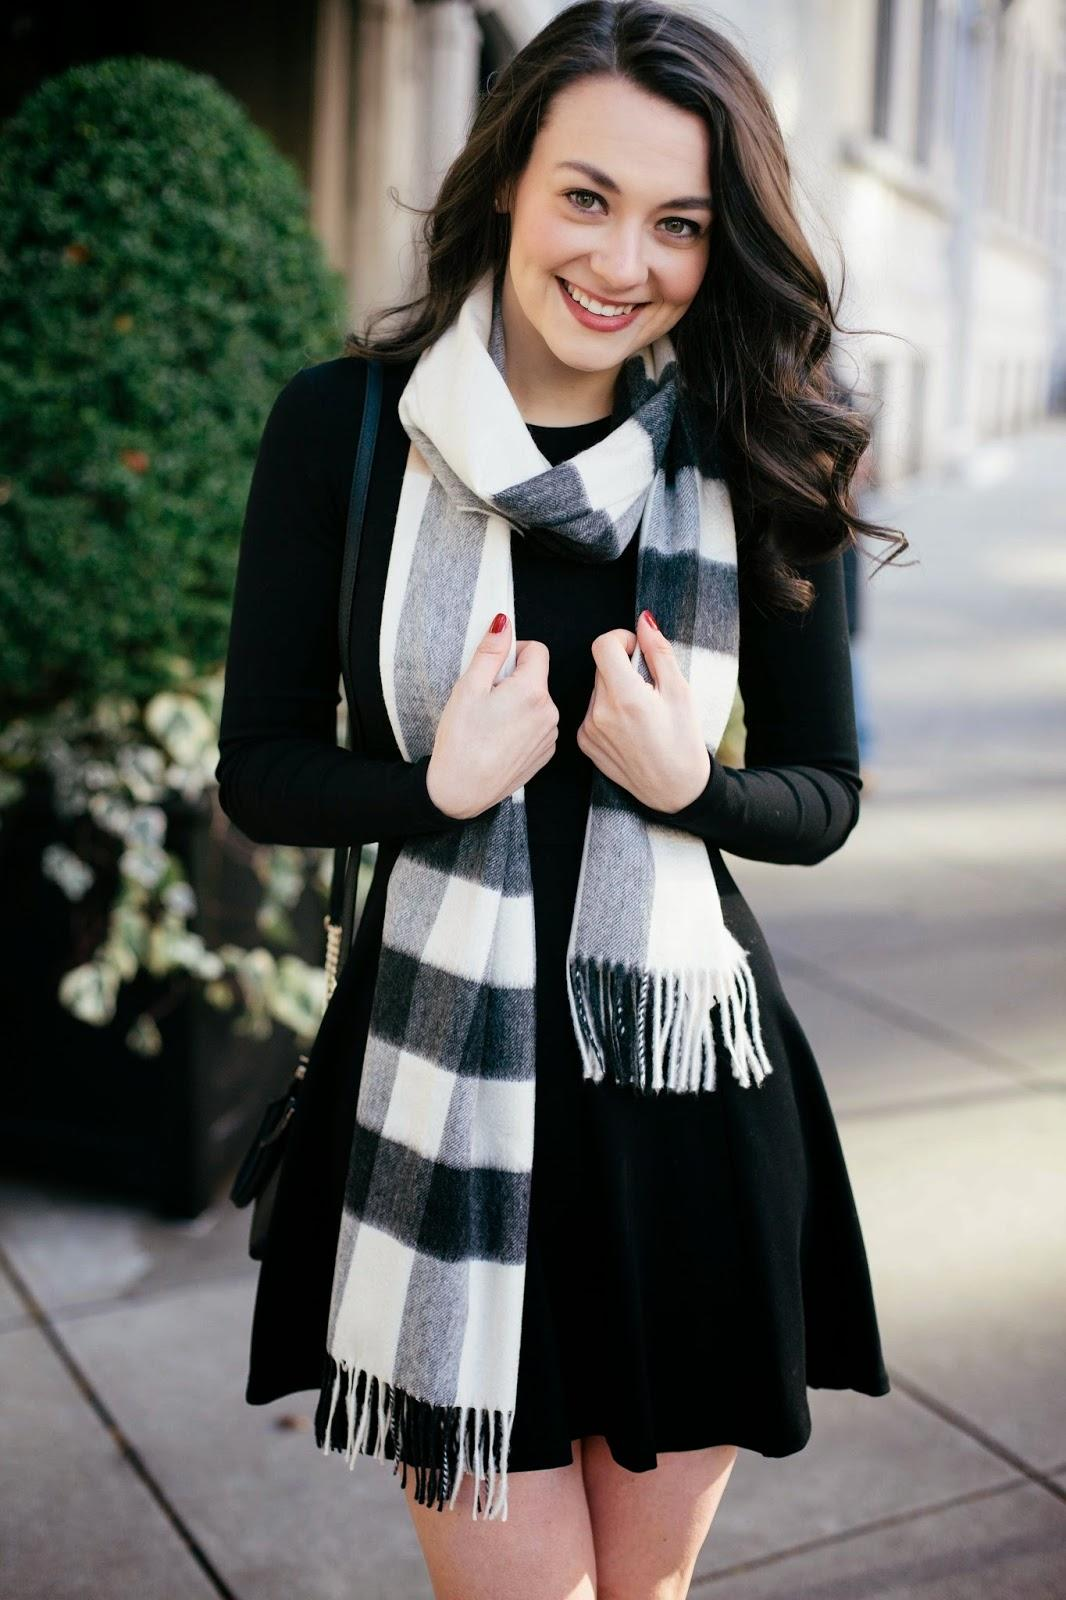 From $134.98 Burberry scarf sale @ Nordstrom